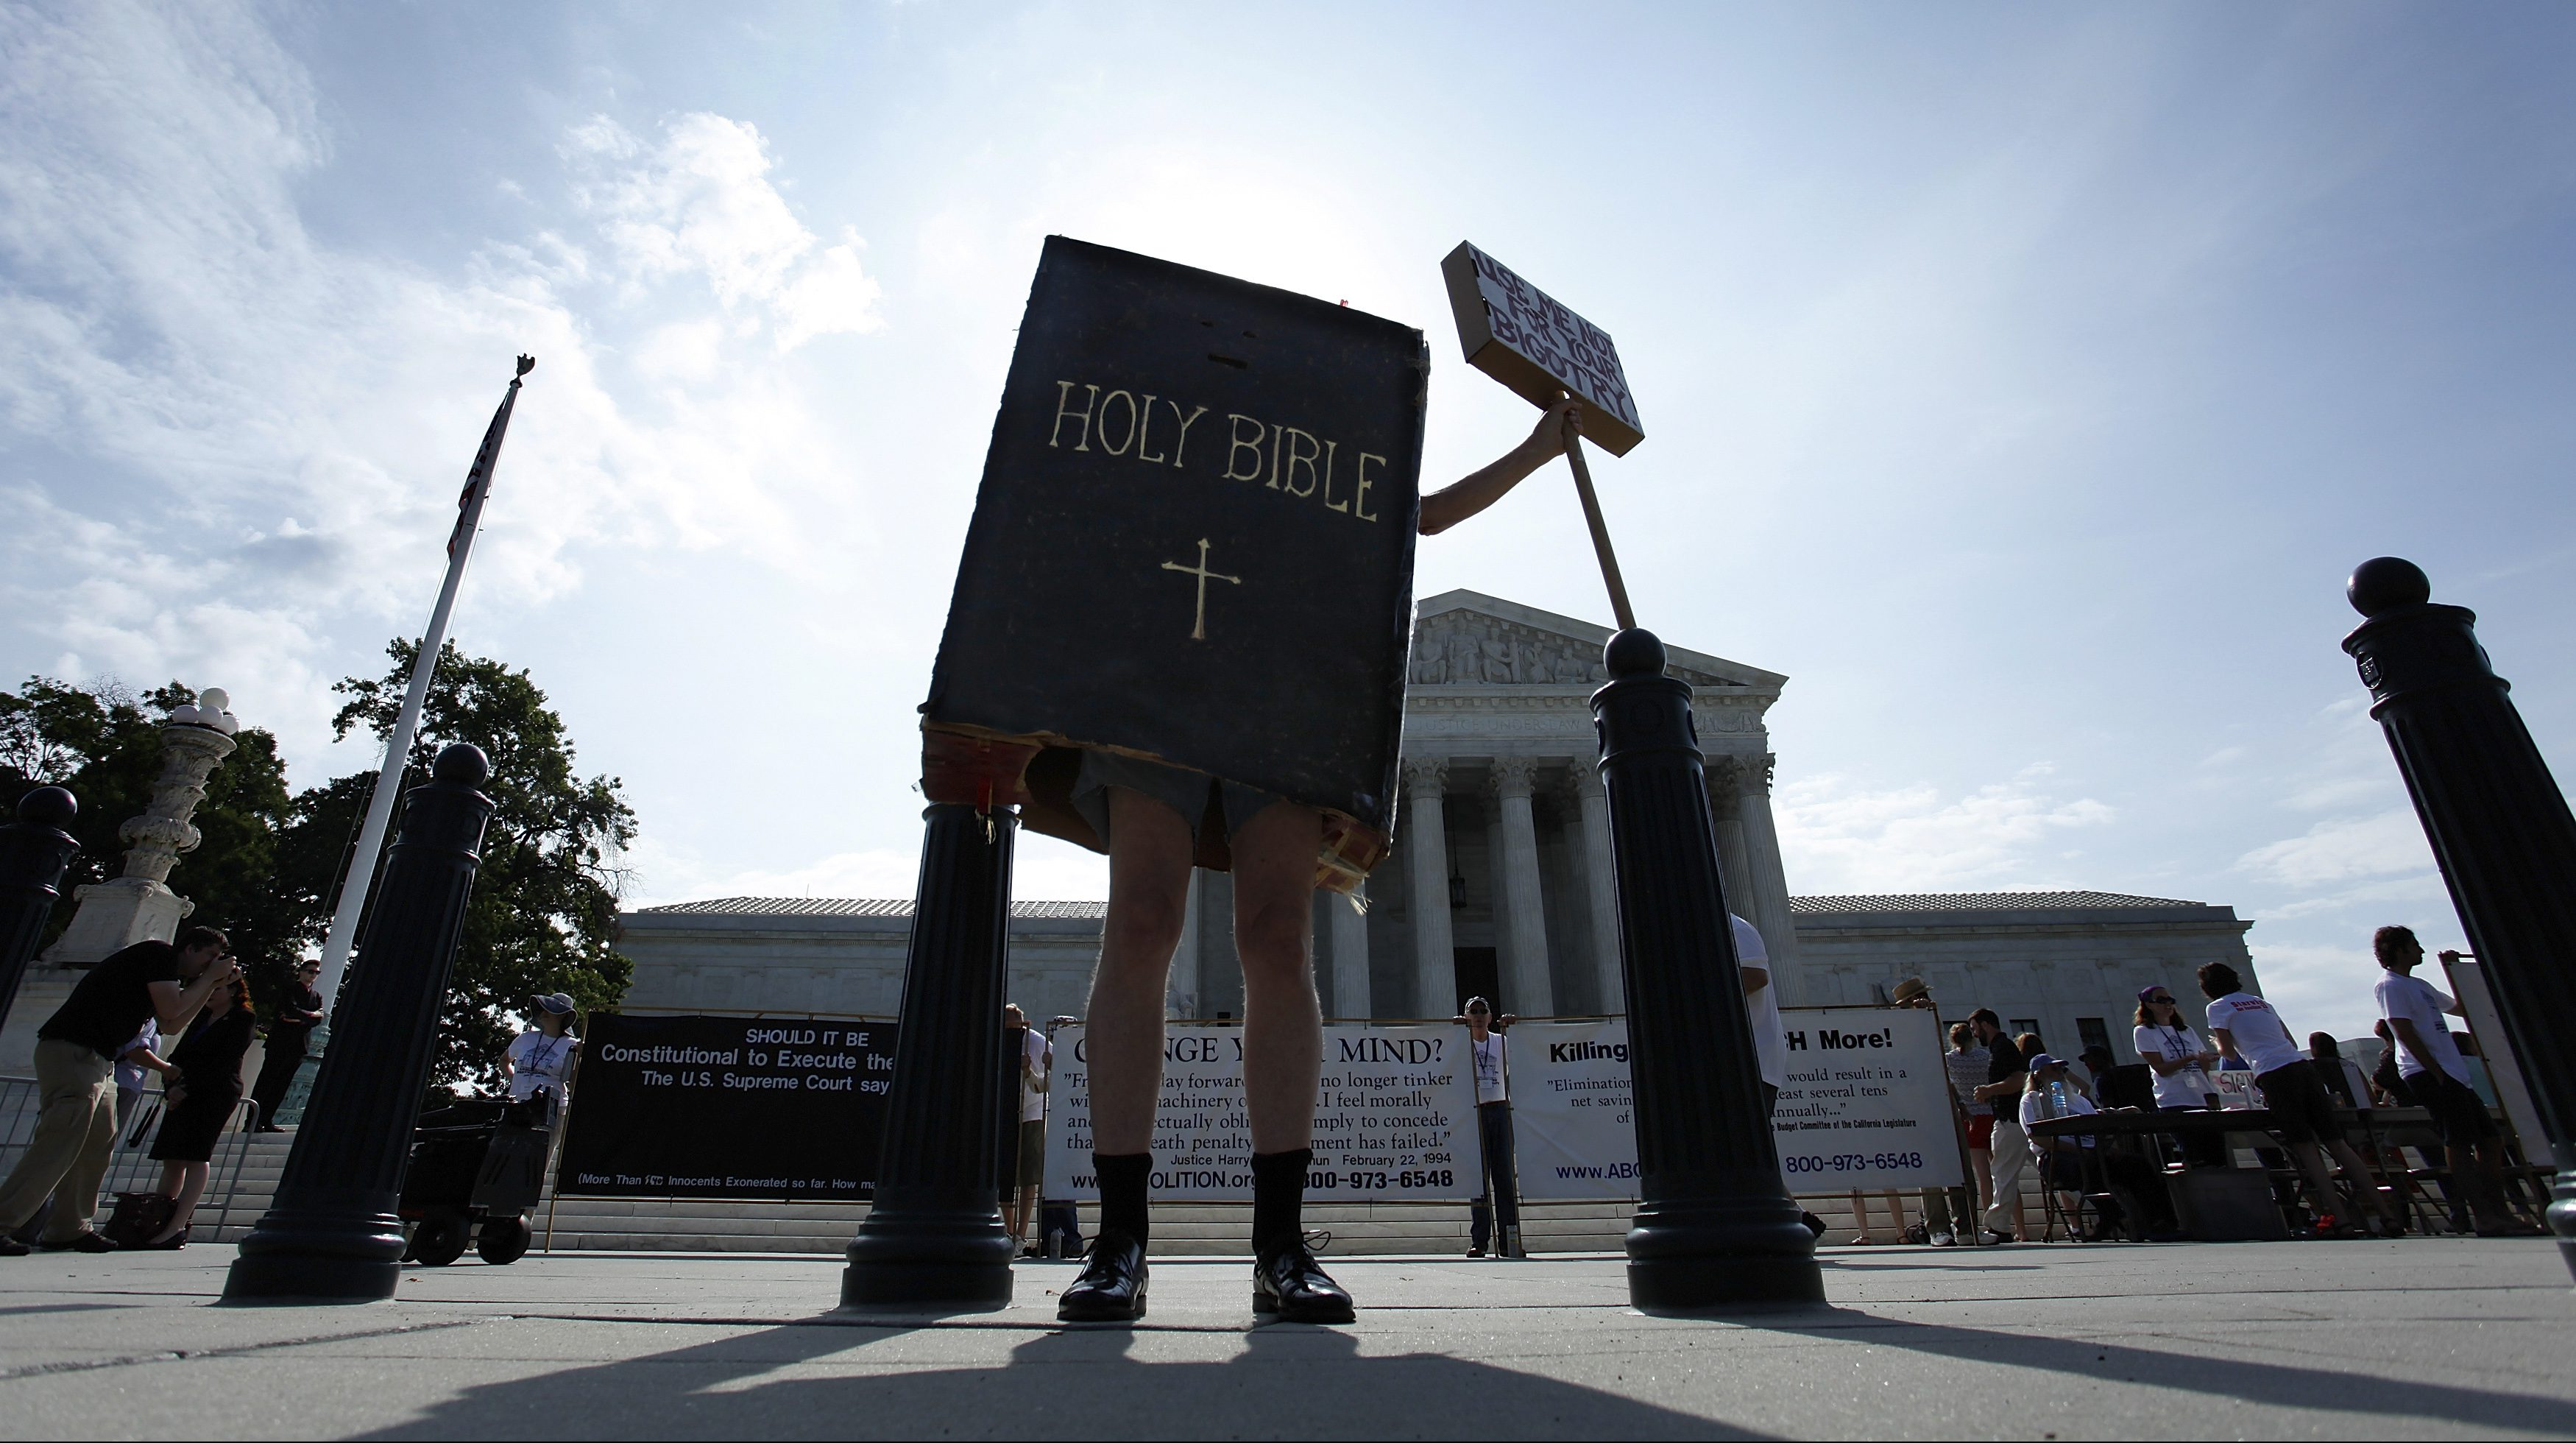 A protester dressed as a copy of the Bible joins groups demonstrating outside the U.S. Supreme Court in Washington June 30, 2014. The U.S. Supreme Court on Monday ruled that business owners can object on religious grounds to a provision of U.S. President Barack Obama's healthcare law that requires closely held companies to provide health insurance that covers birth control. REUTERS/Jonathan Ernst (UNITED STATES - Tags: RELIGION HEALTH CIVIL UNREST POLITICS TPX IMAGES OF THE DAY) - RTR3WG97